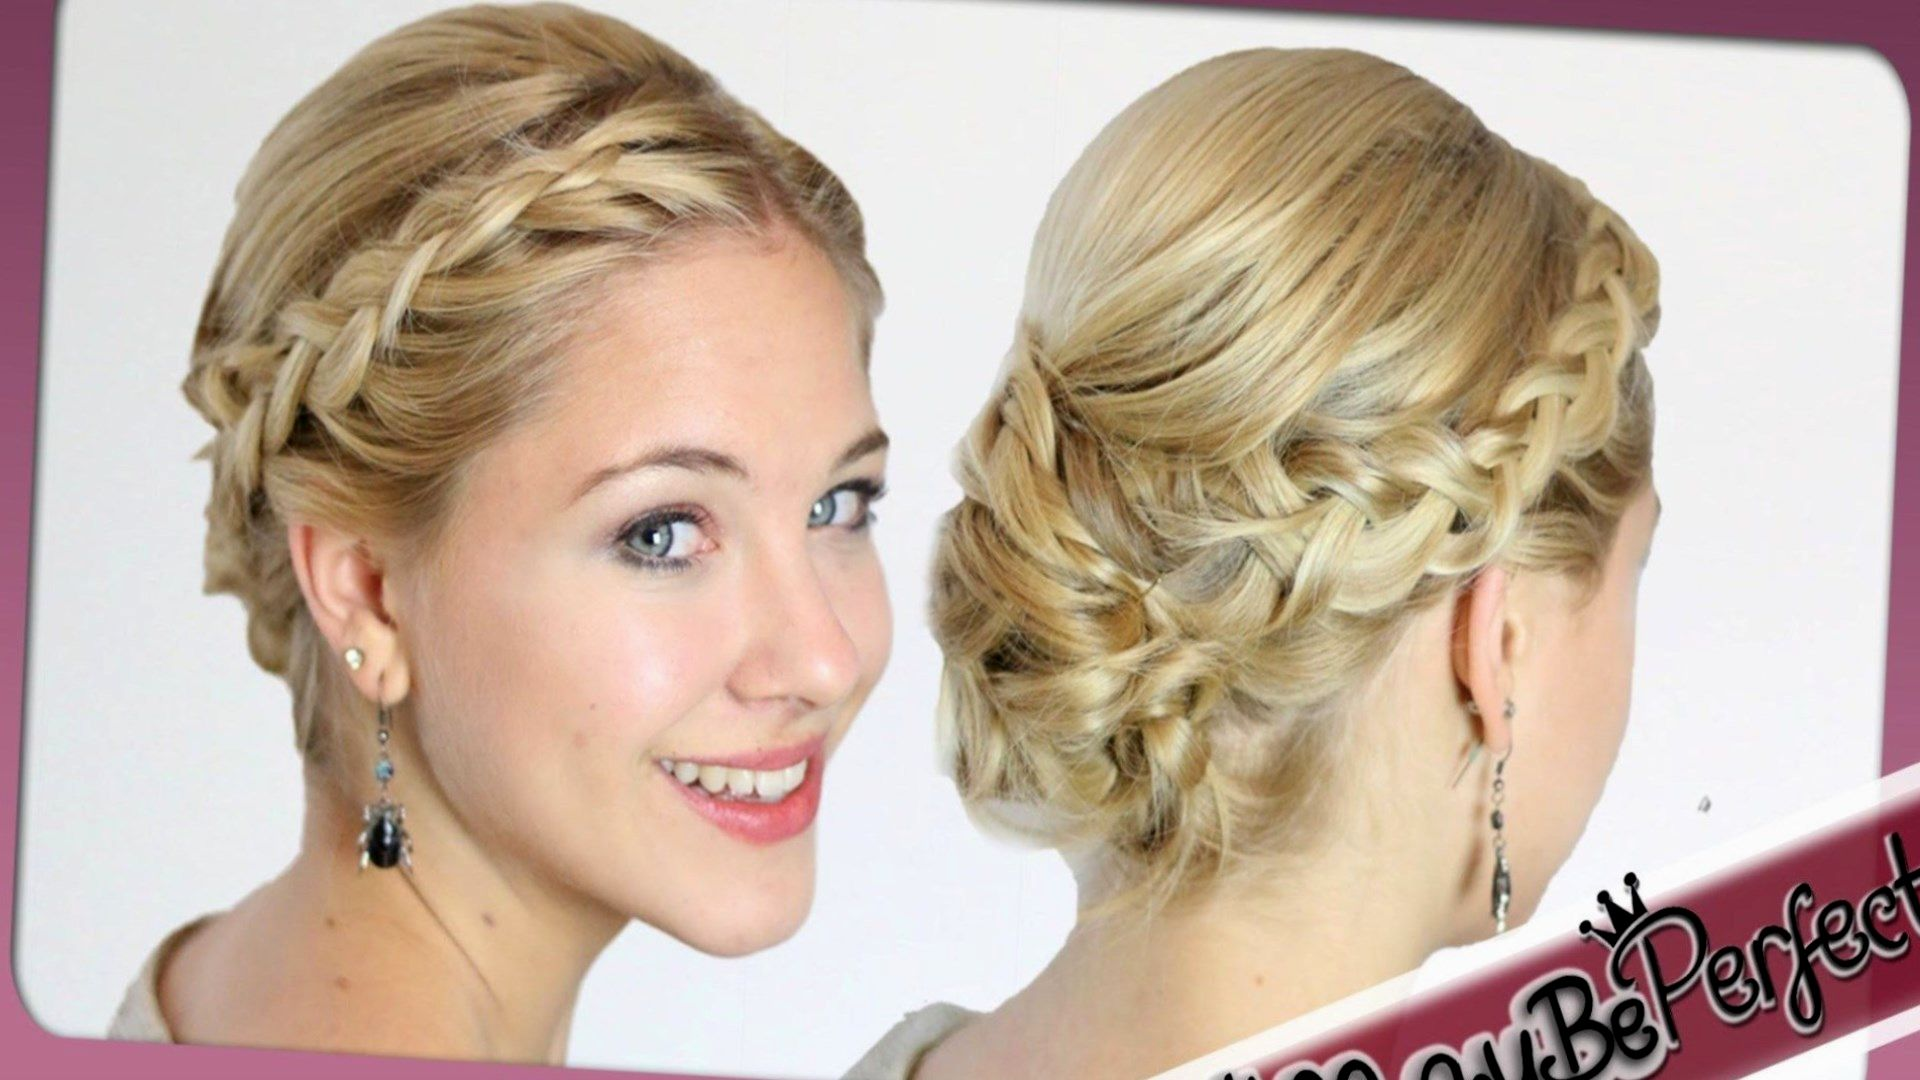 modern hairstyles for thin hair collection-Best updos for thin hair photography